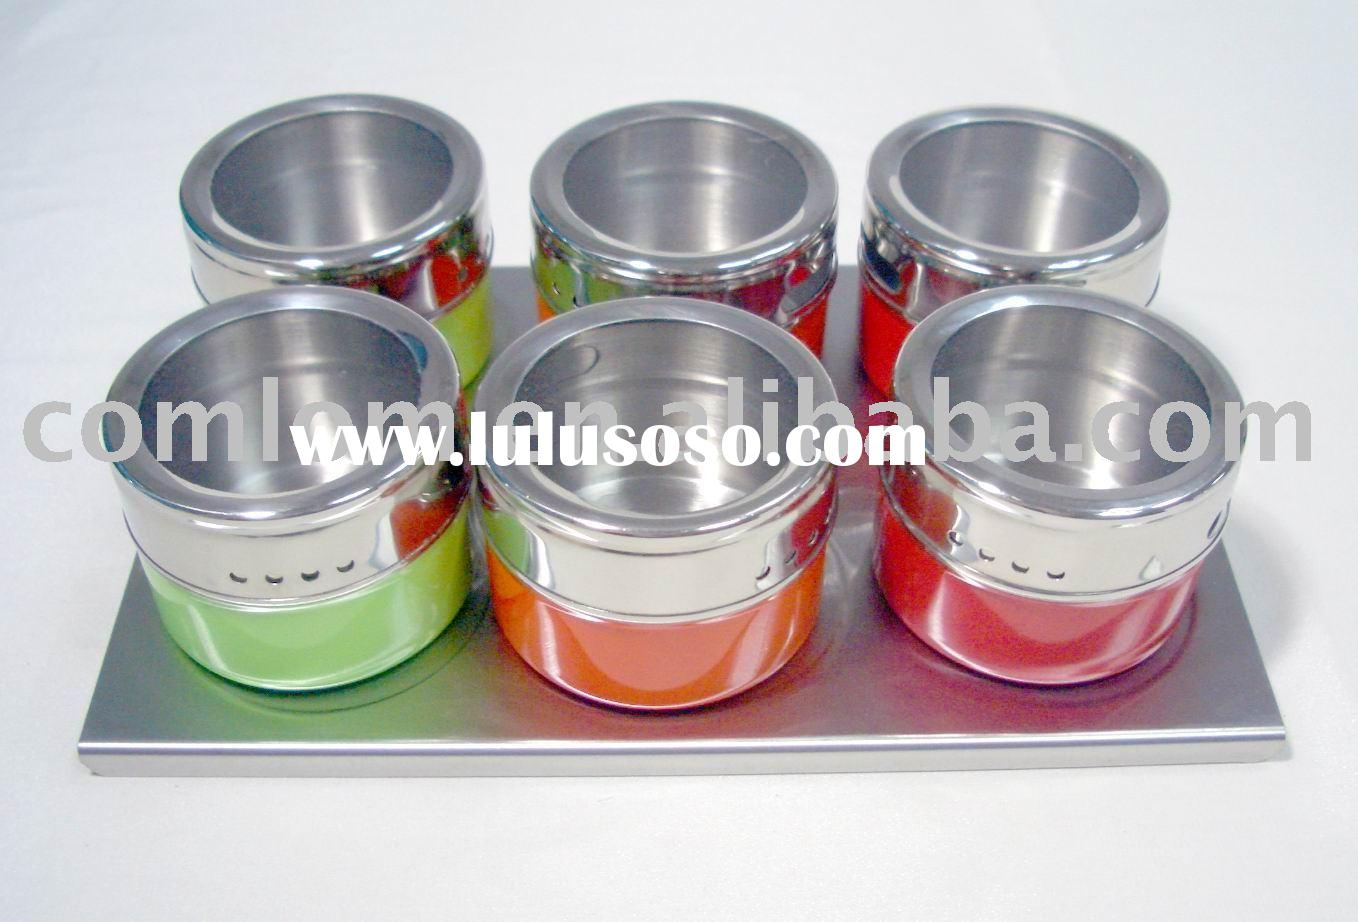 Spice rack set stainless steel